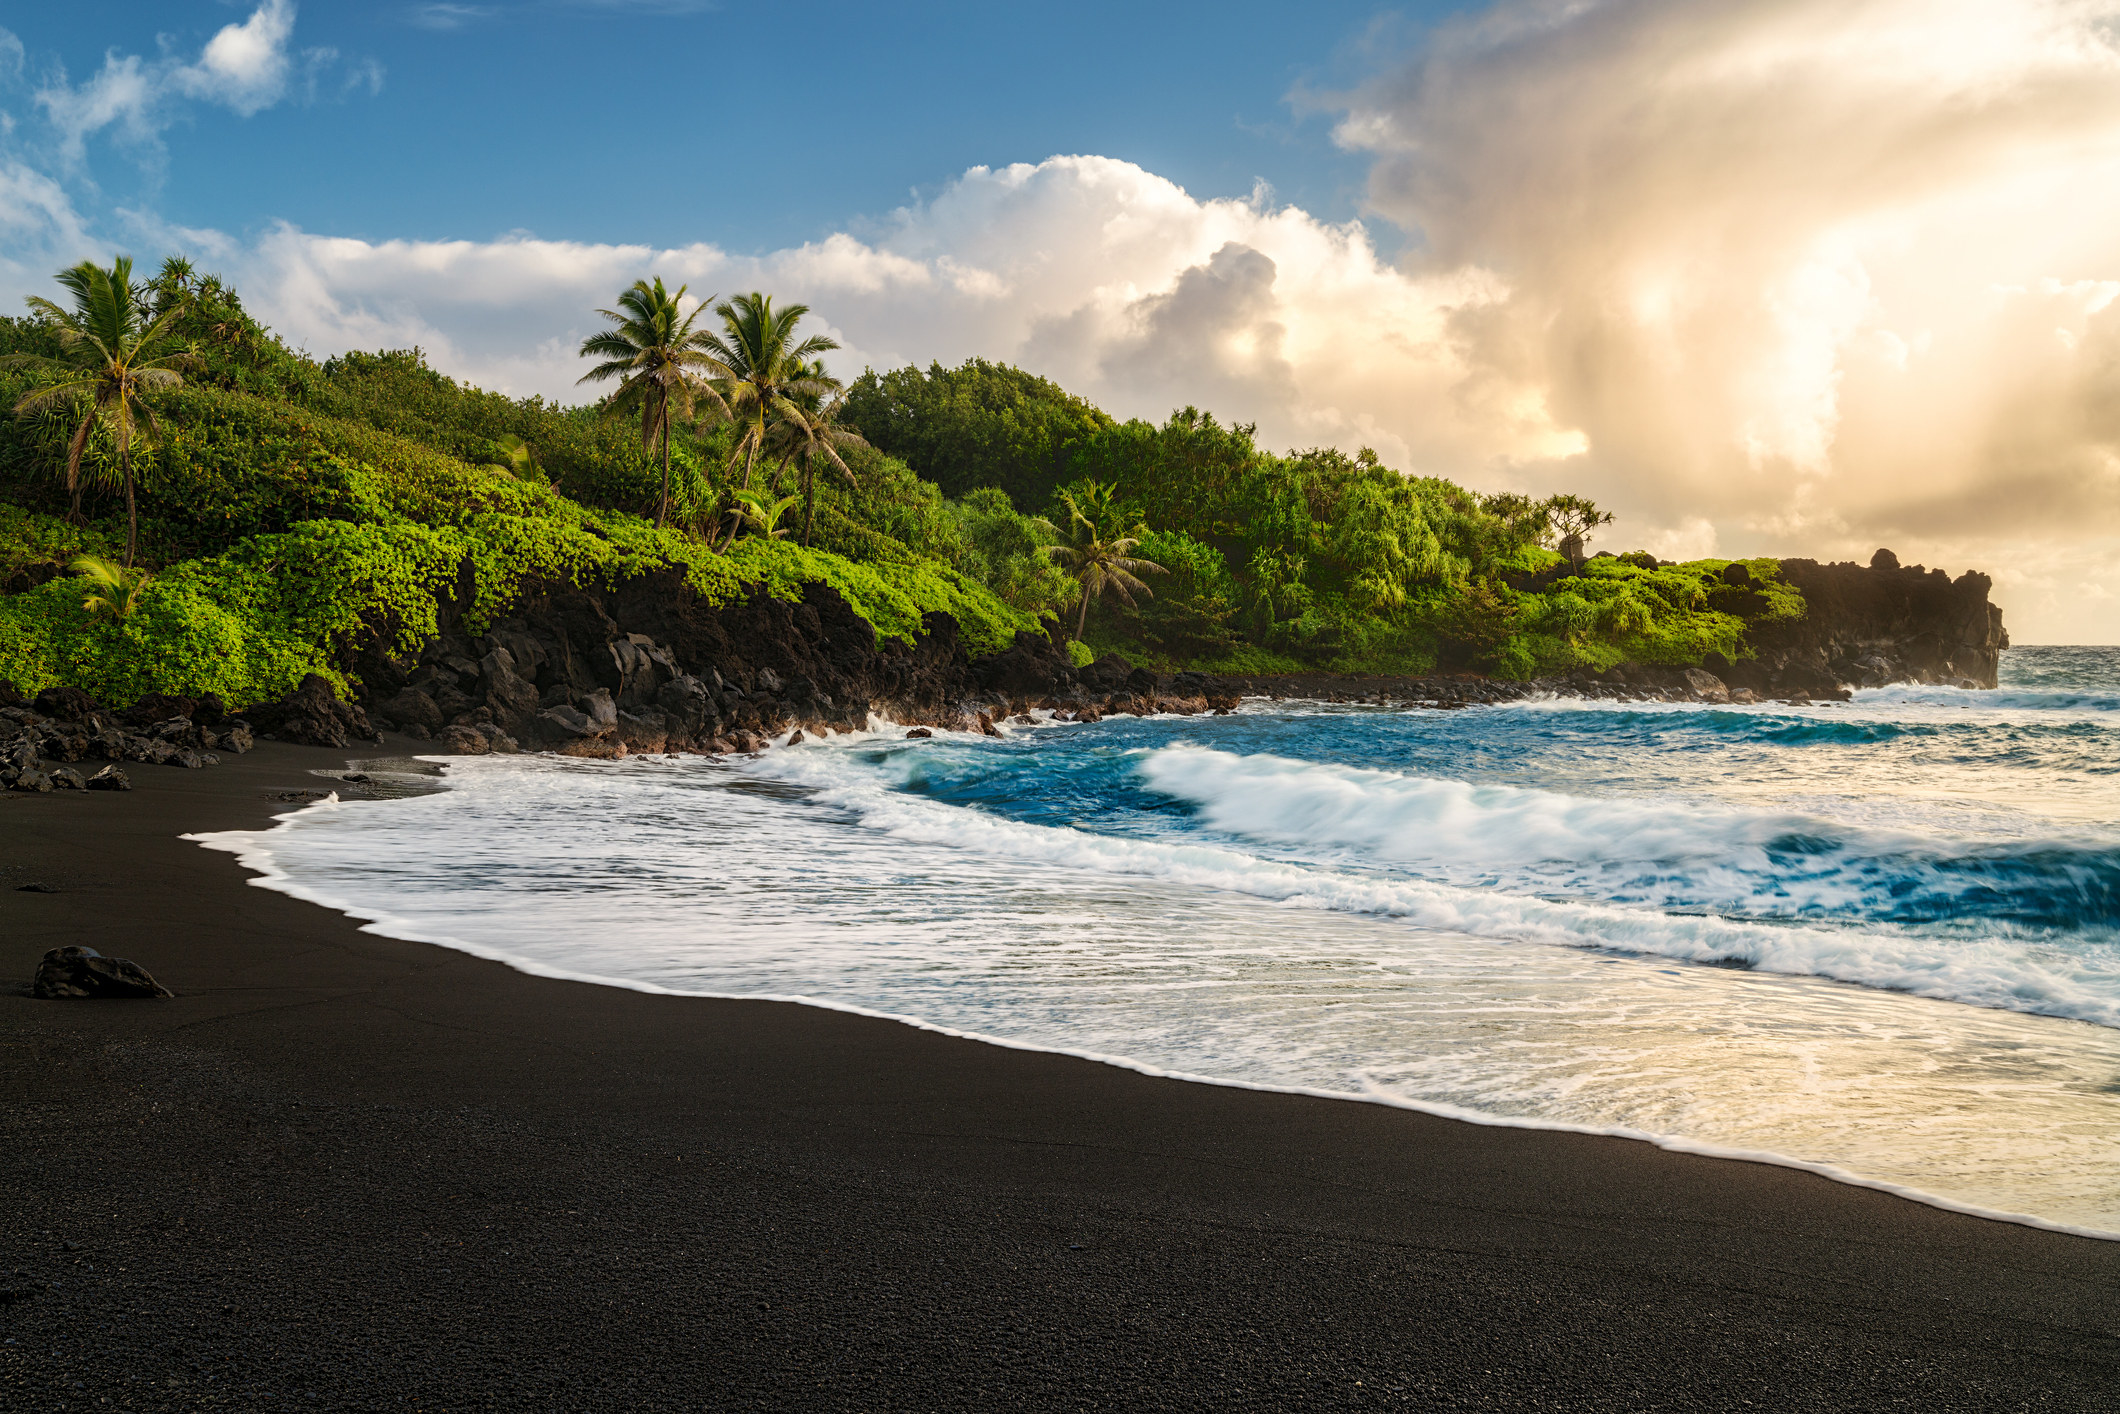 Waianapanapa Beach with black sand, blue waves, and lush greenery on the cliffside